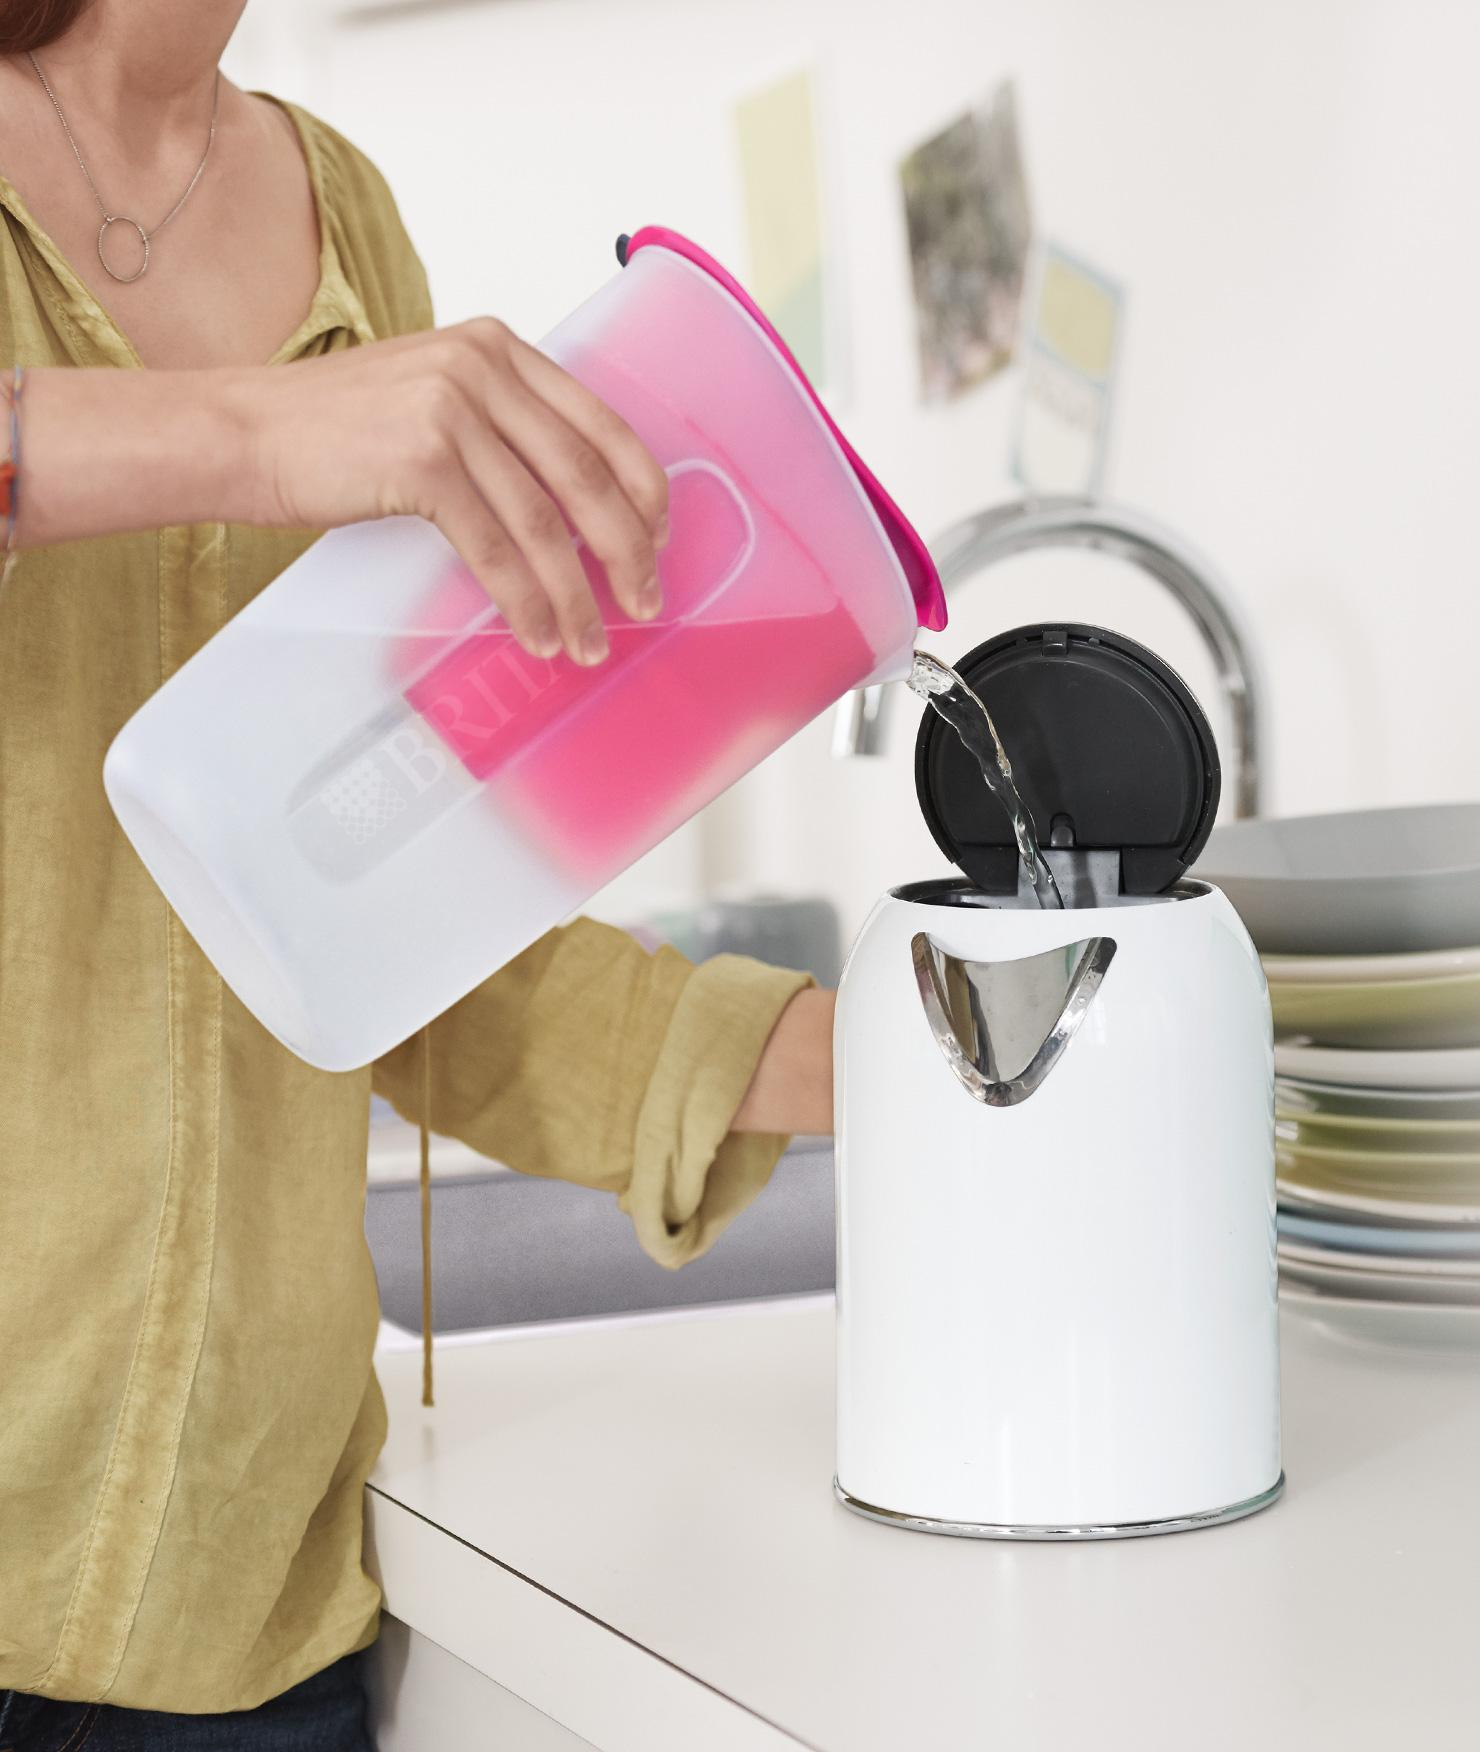 BRITA filters&cartridges MAXTRA+ Limescale pouring